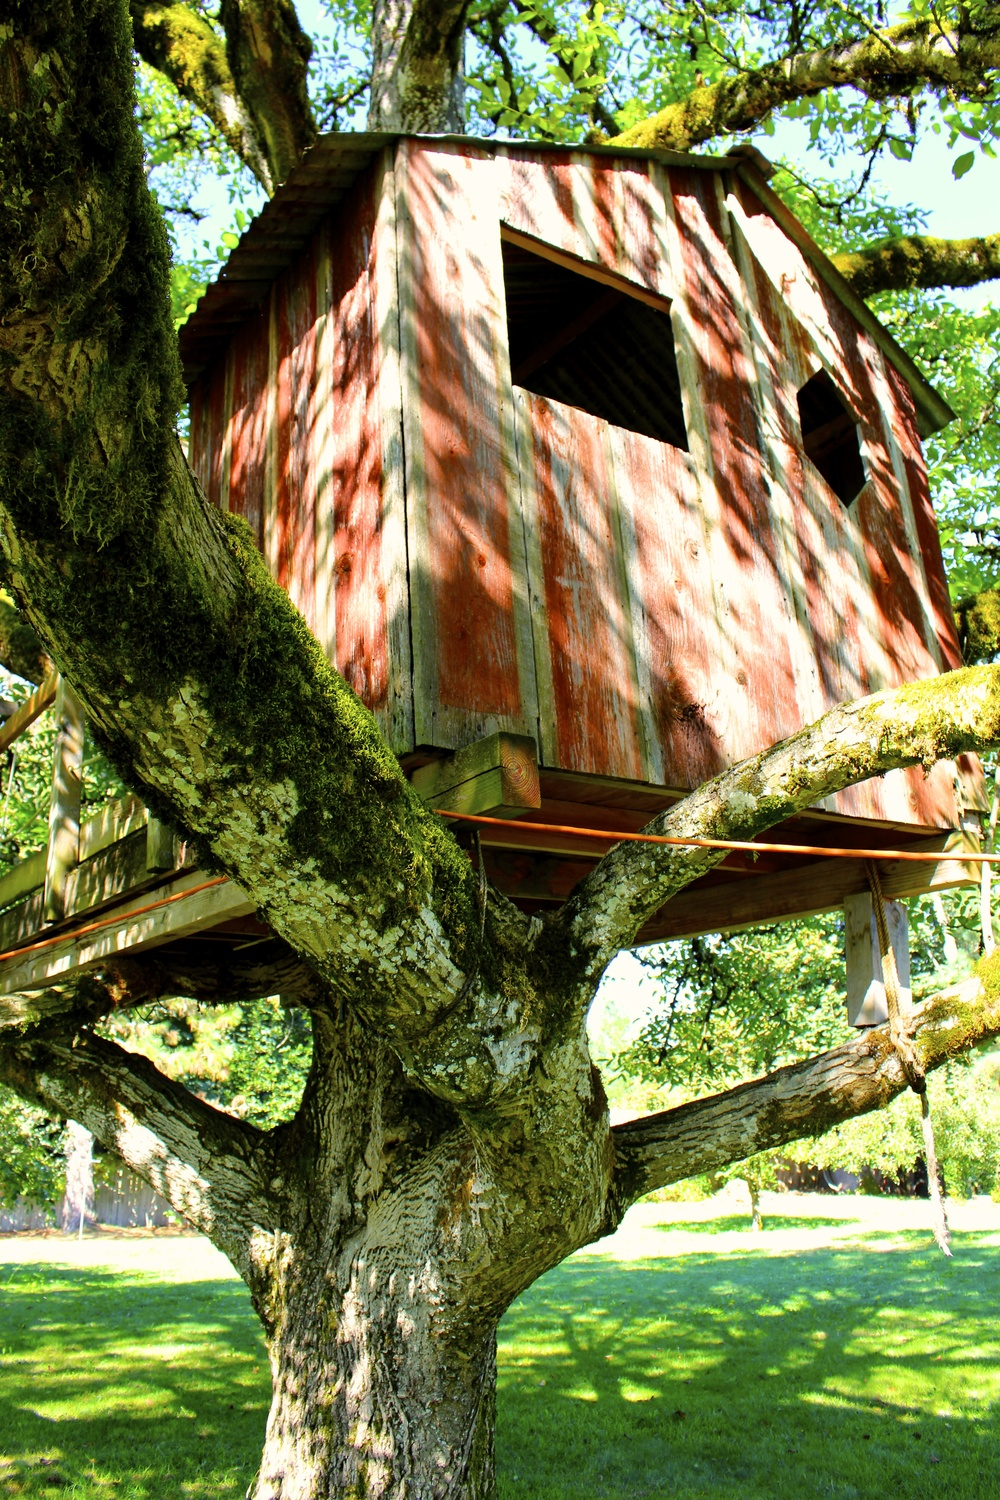 The treehouse from another angle